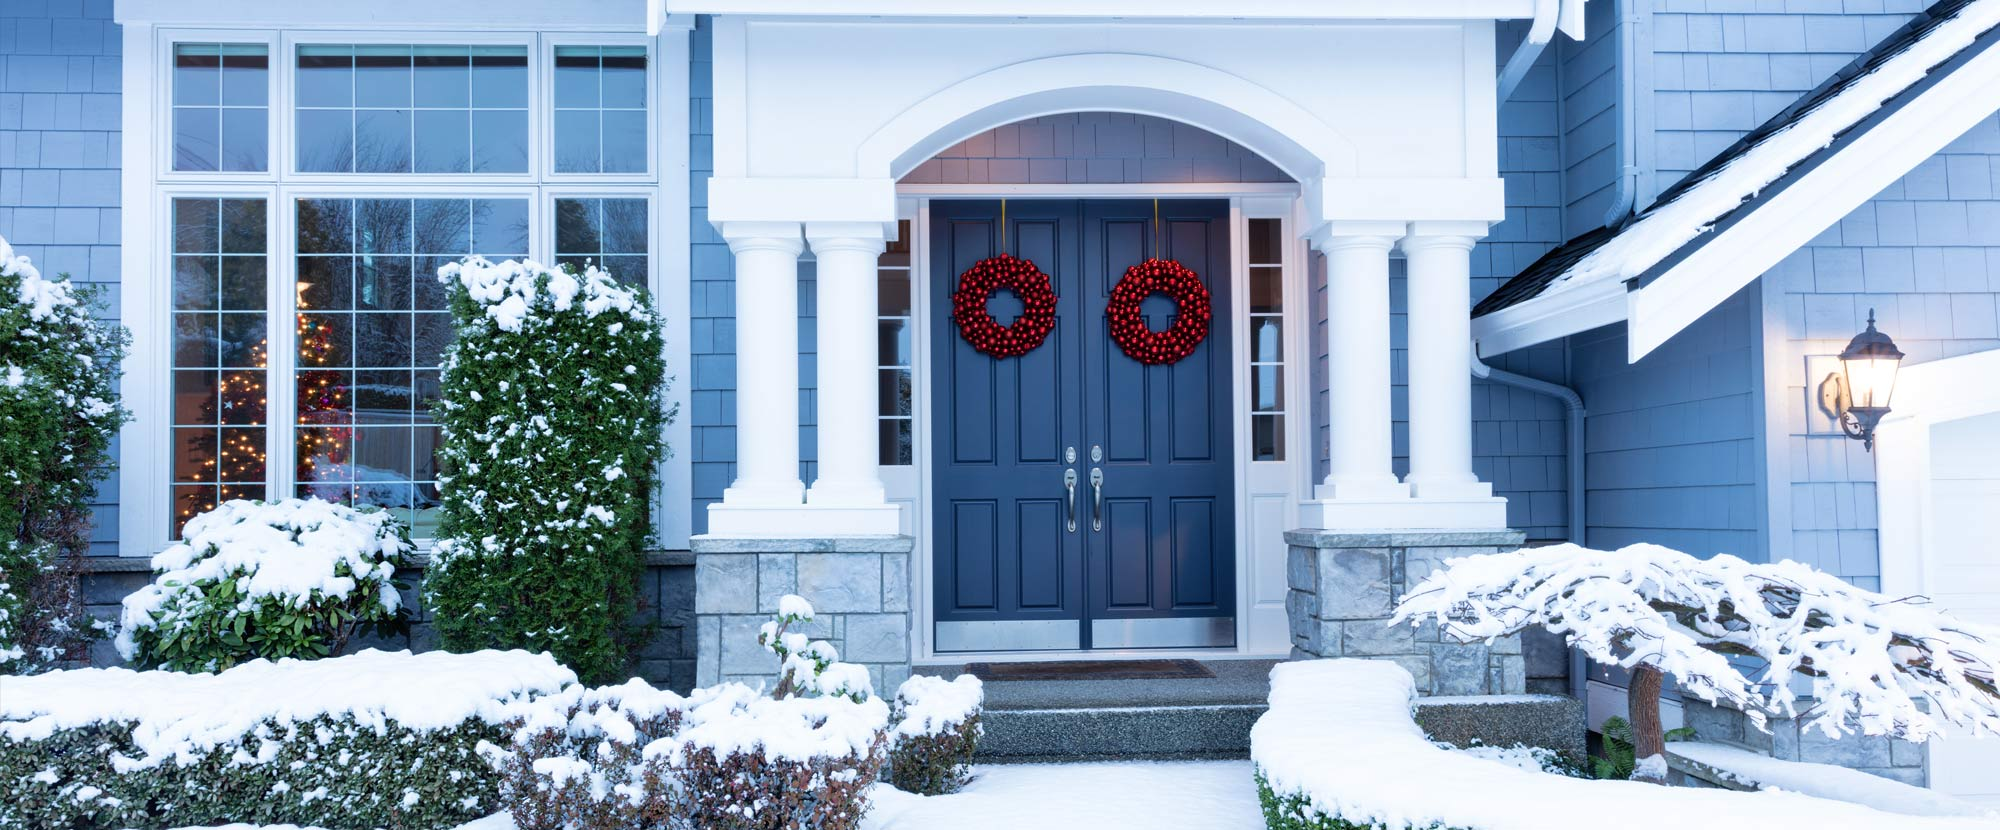 Is Your Home Insurance Policy for Winter?